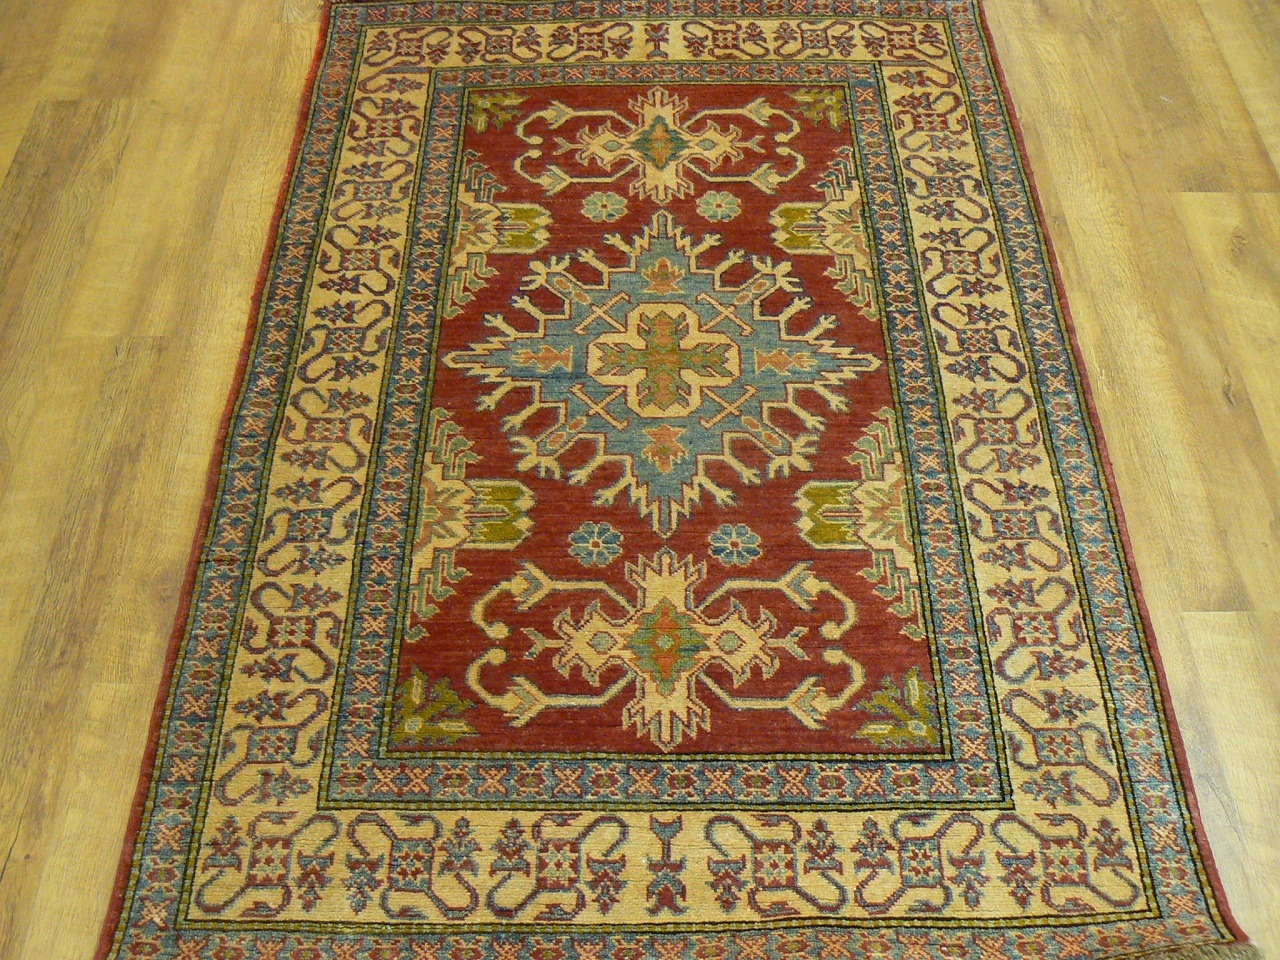 Buy Kazak Rugs In Dubai Abu Dhabi Across Uae Carpetsdubai Com